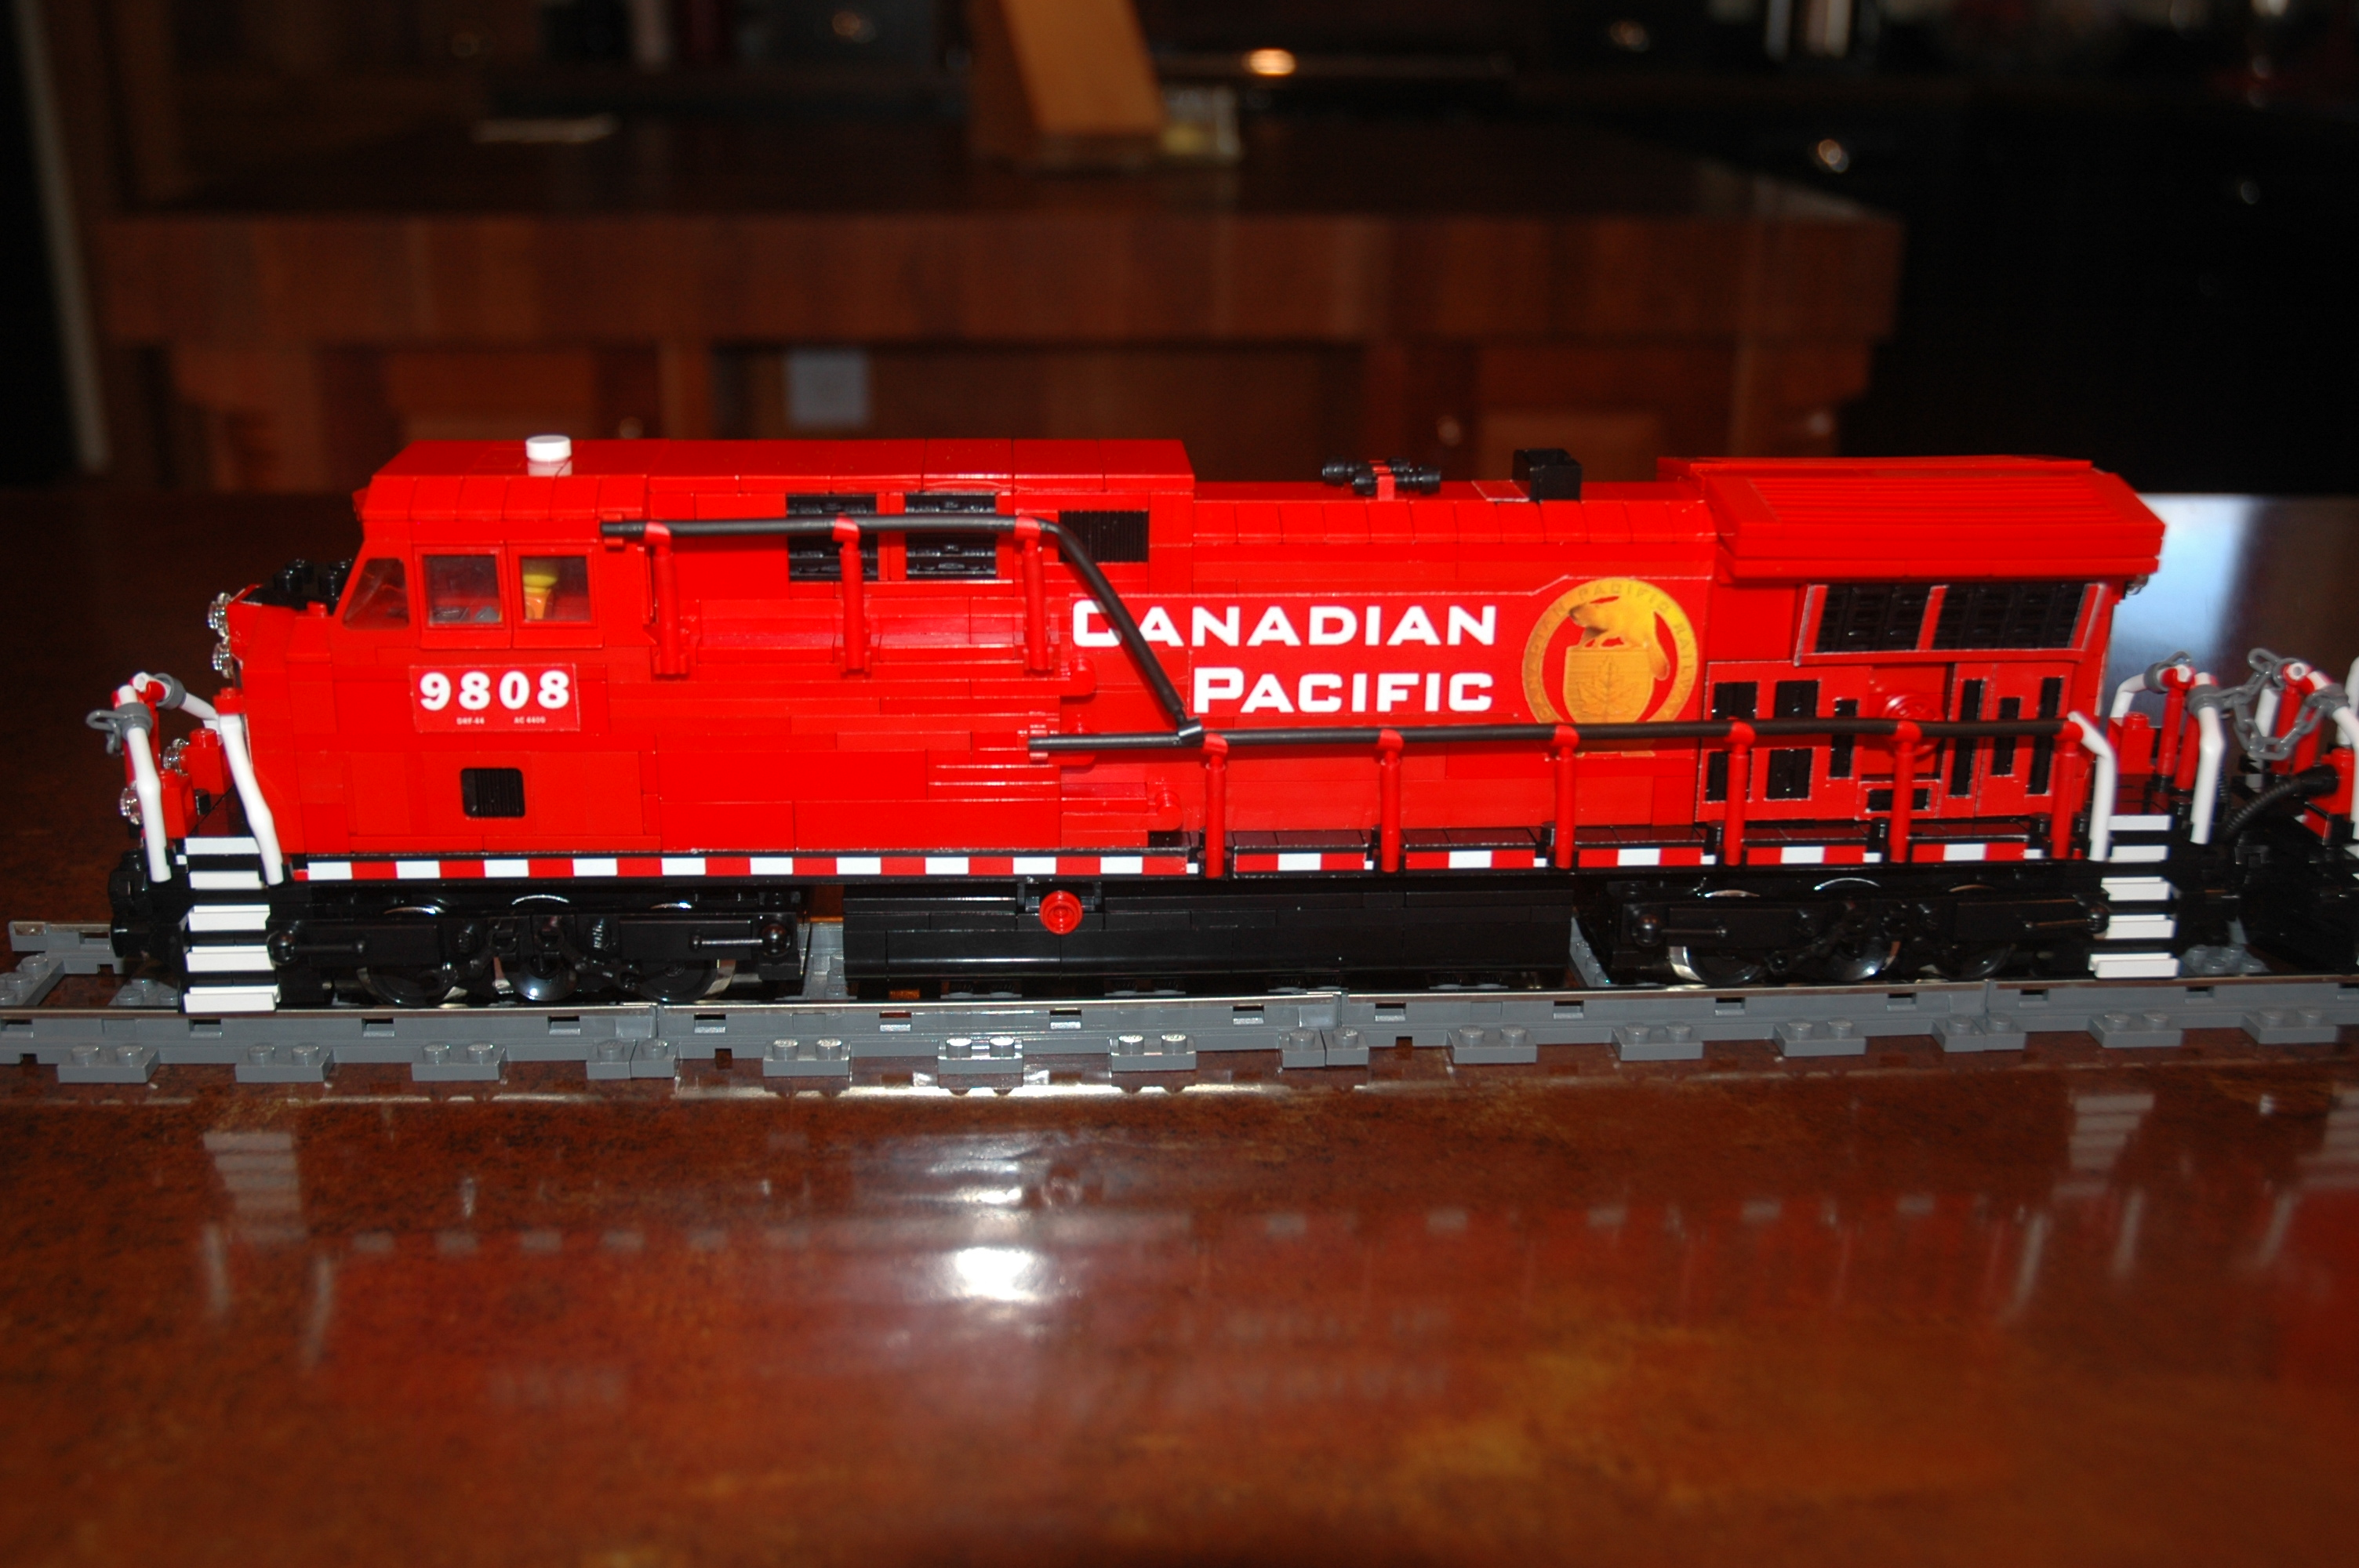 lego_cp_freight_engine_ac4400cw_cp9808_left.jpg